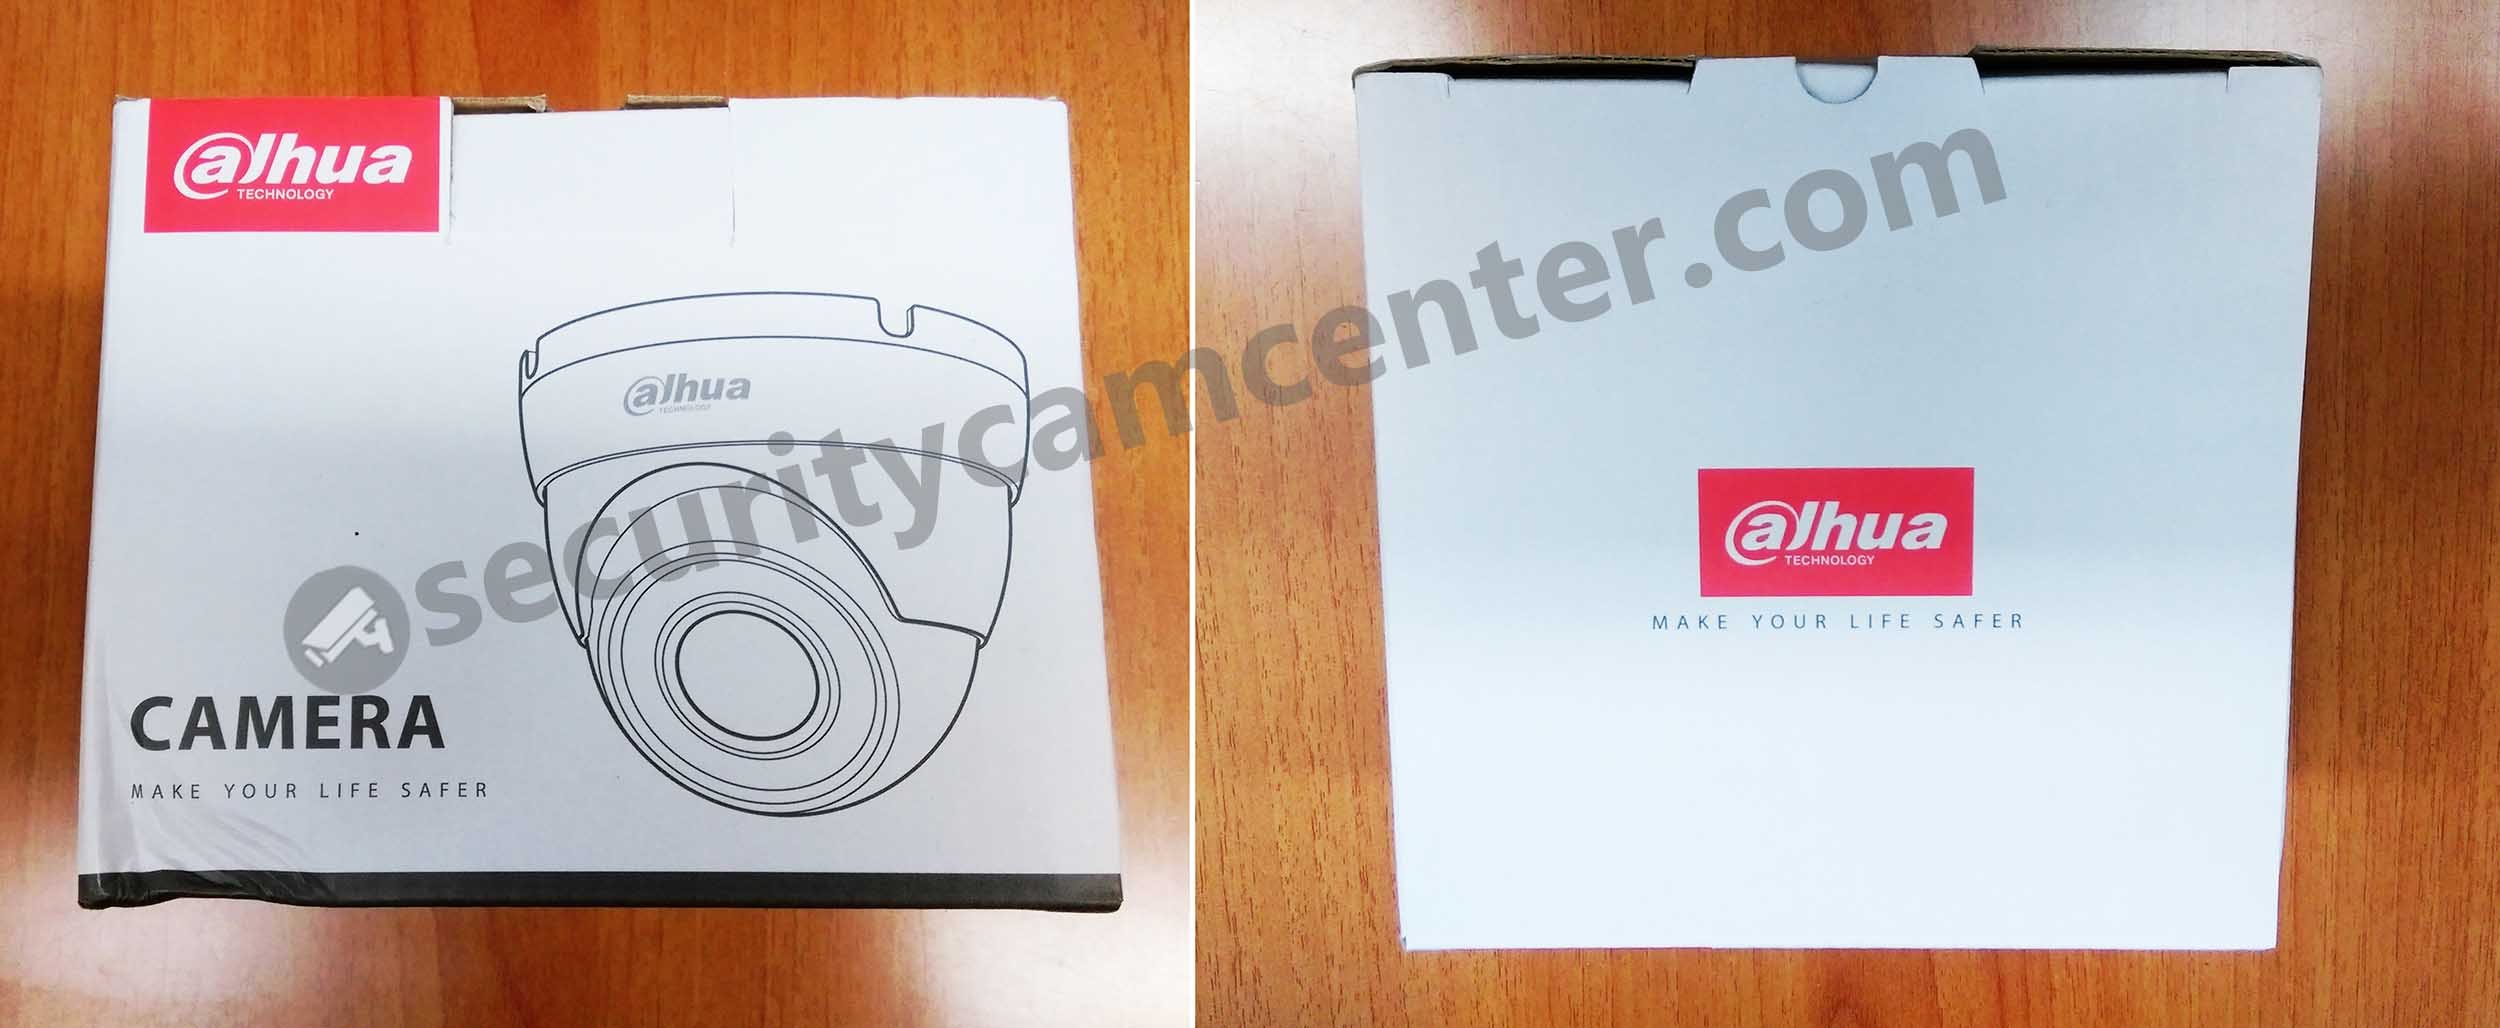 This is the retail box of DH-IPC- HDW4421M. The Dahua's logo is stamped on the box and the camera itself.